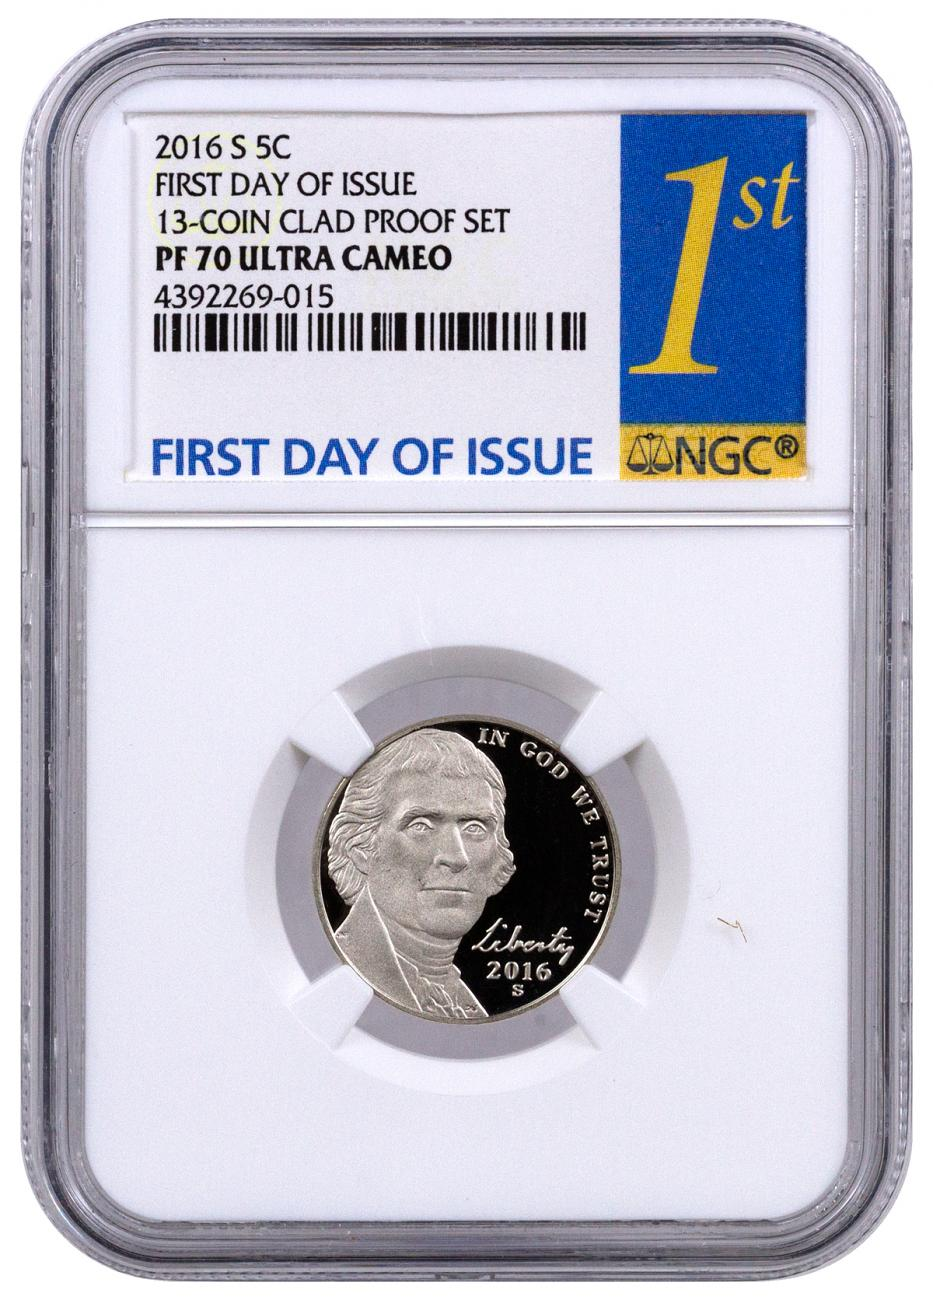 2016-S 5c Proof Jefferson Nickel - NGC PF70 UC (First Day of Issue Label)